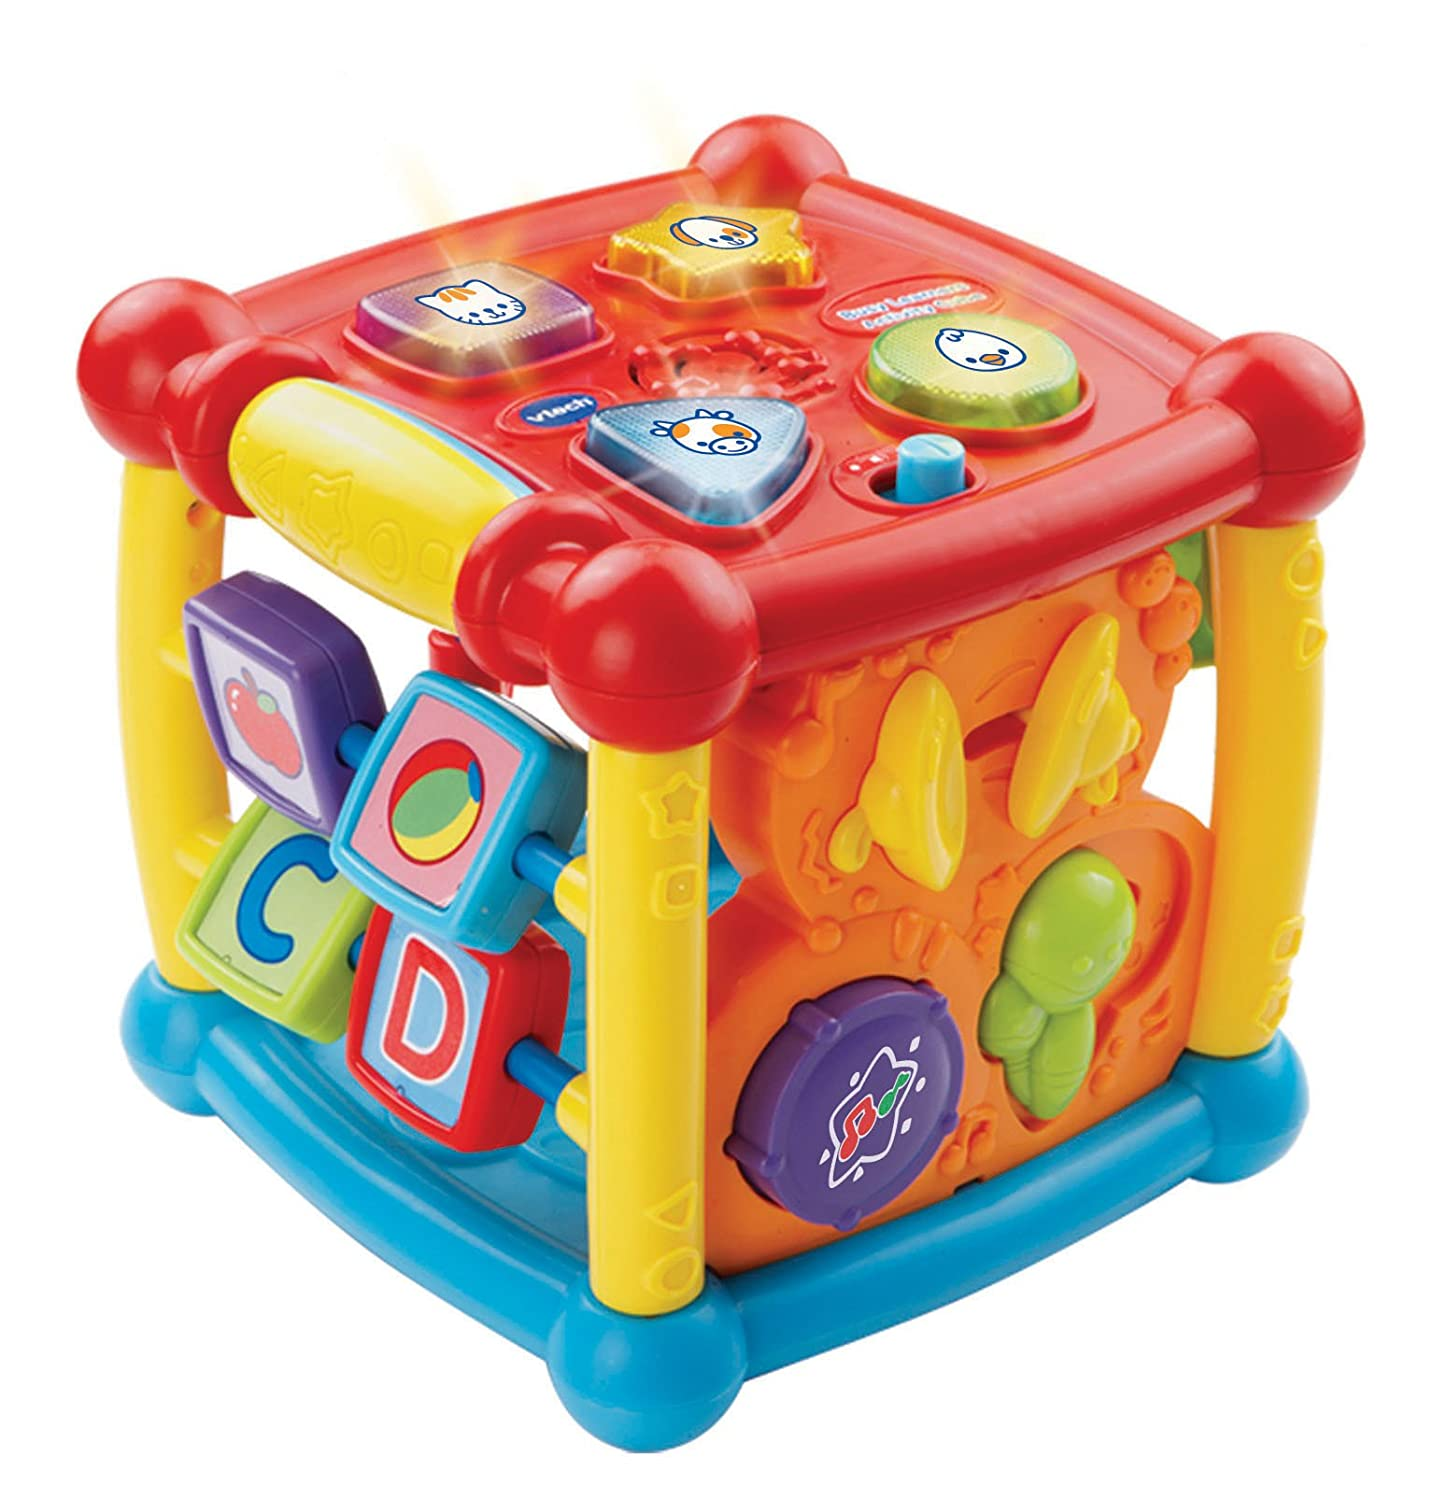 vtech busy learners activity cube - What To Get A 6 Month Old For Christmas